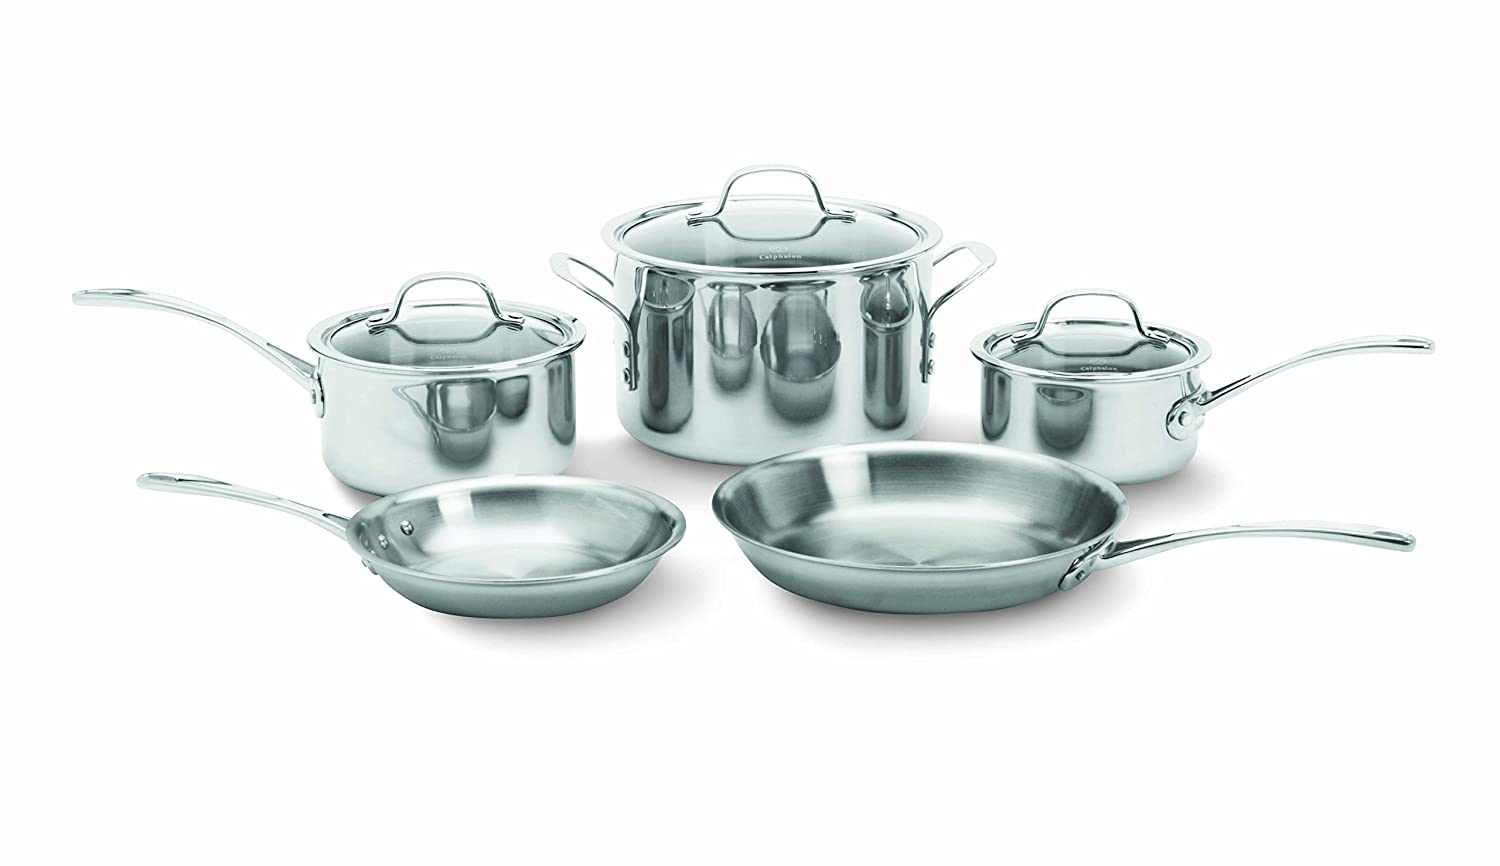 Amazon.com: Calphalon 1767952 Tri-Ply Stainless Steel 8-Piece ...